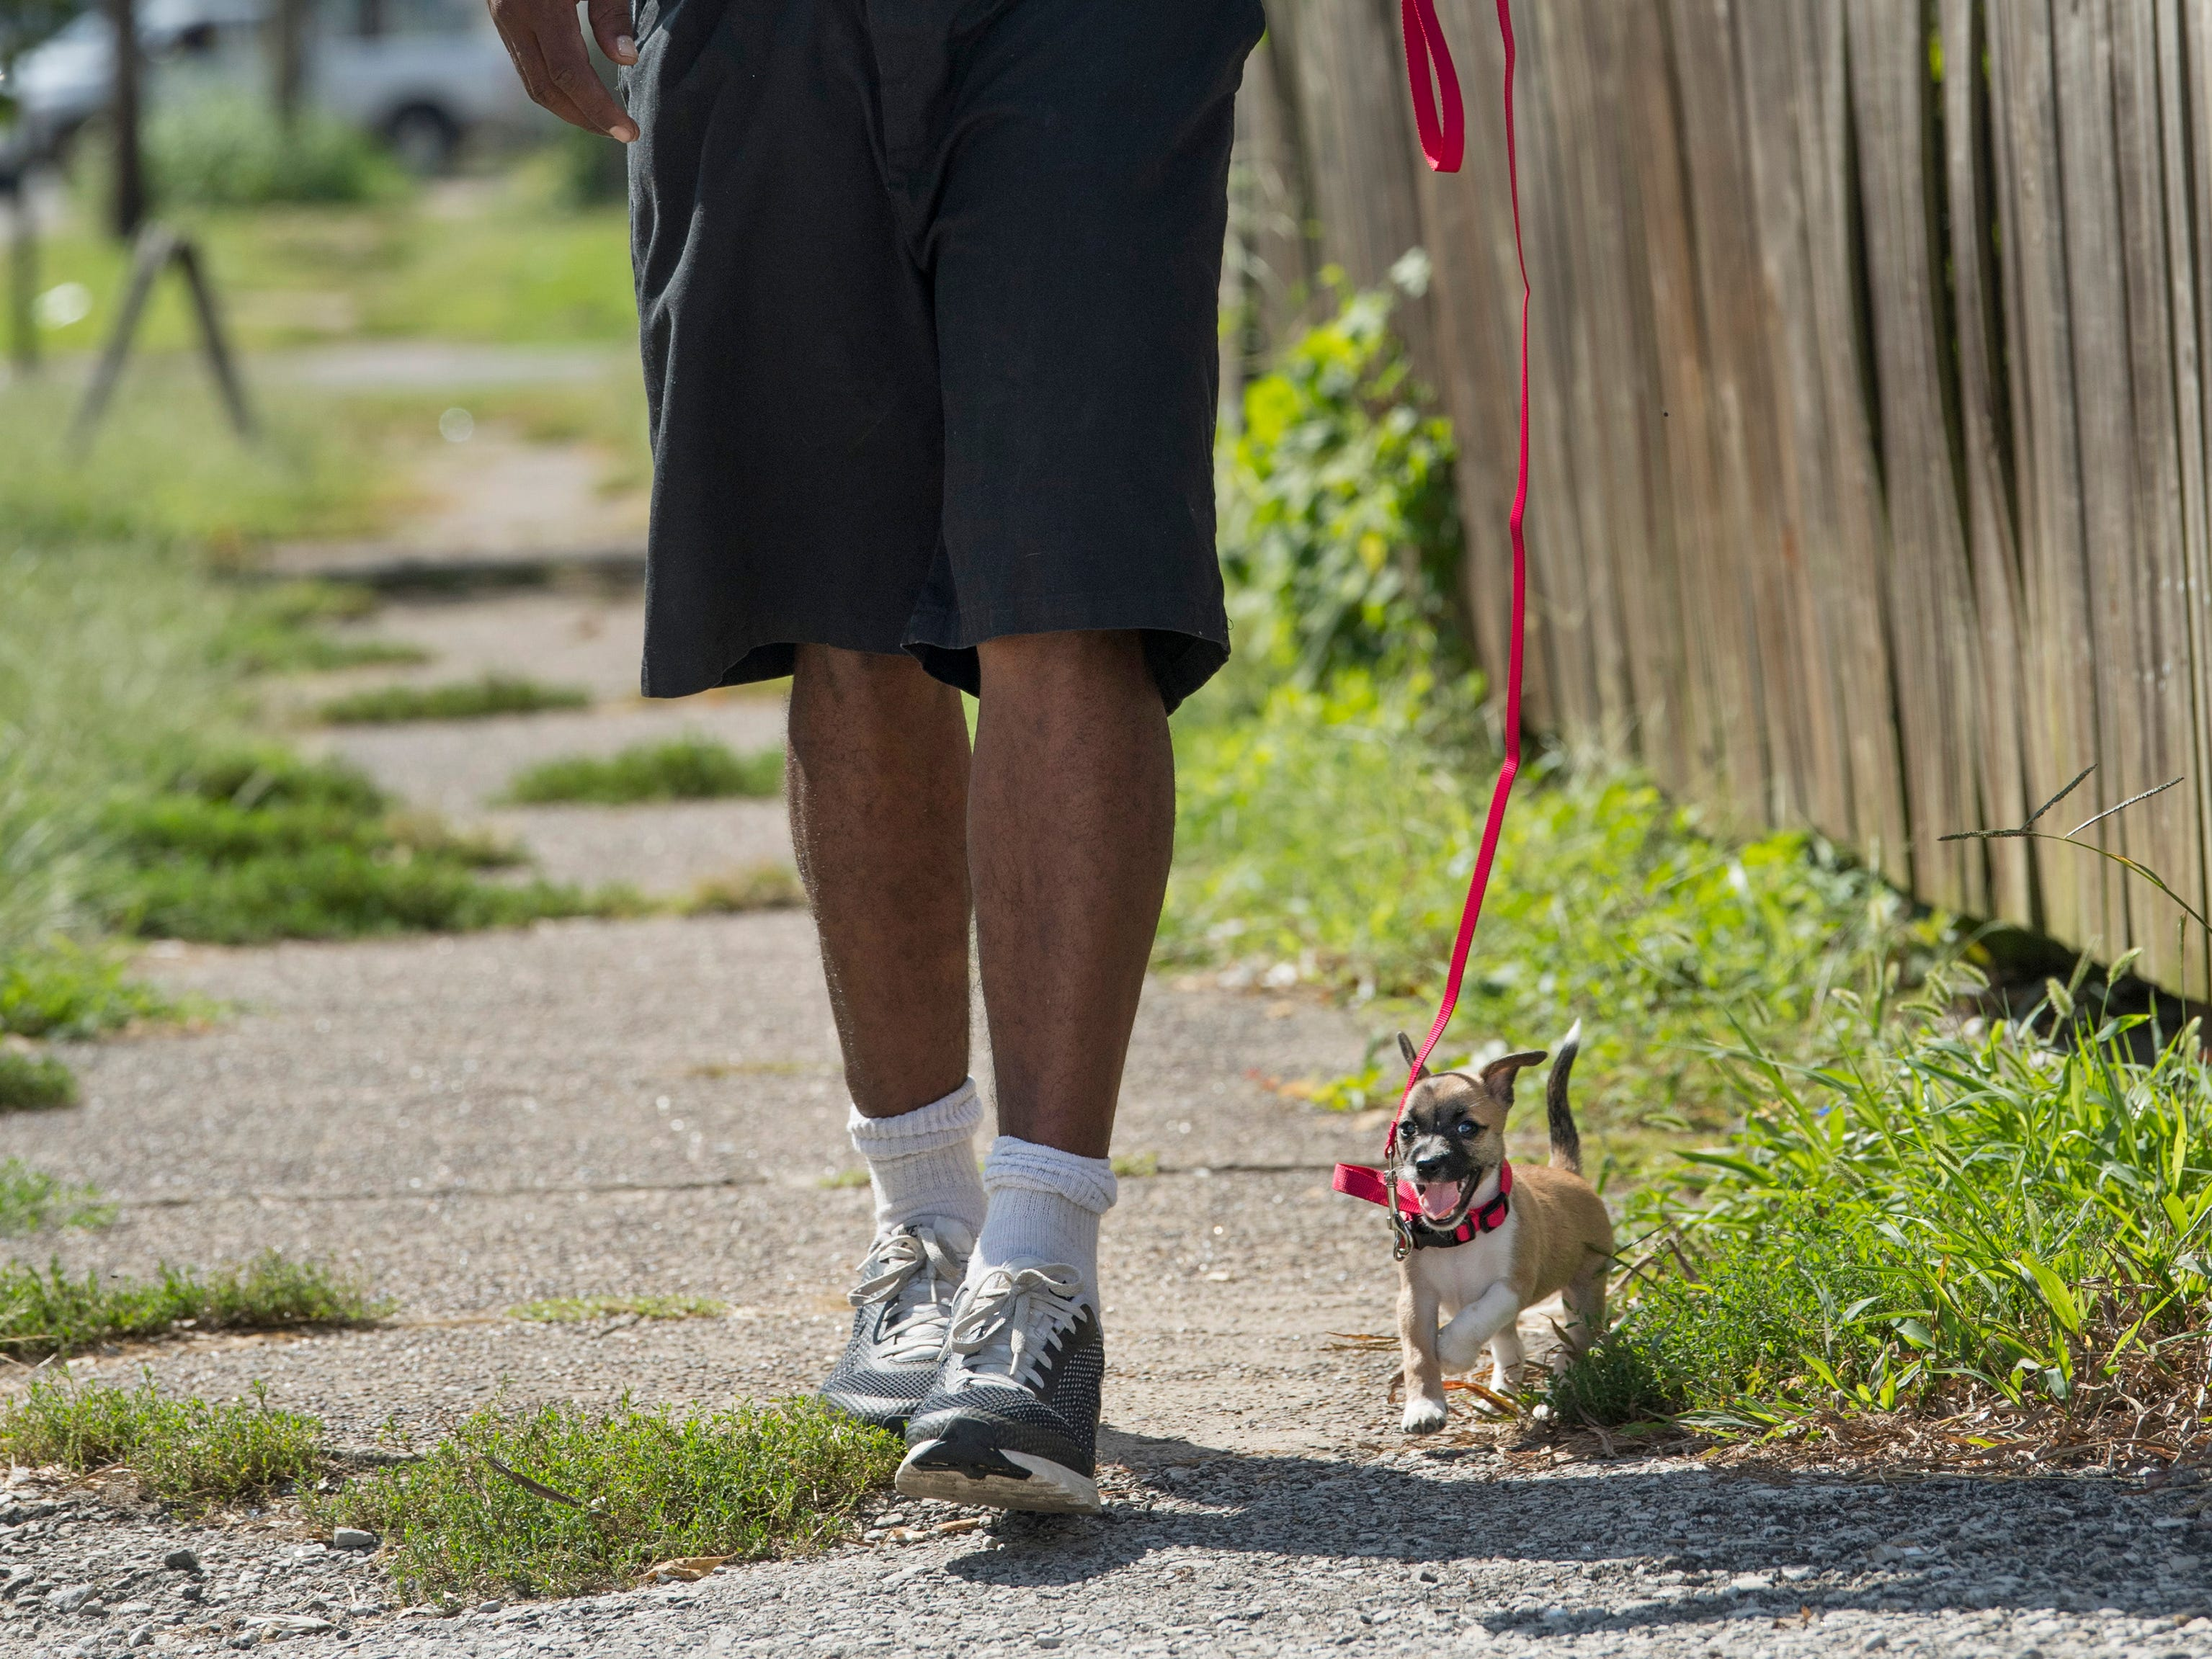 """Brandon Pipper of Evansville walks his yet-to-be-named Chihuahua puppy out for a stroll using a leash for the first time Monday morning. Pipper got the puppy Sunday as a surprise gift for his kids. """"She's spoiled,"""" he said. """"The kids are gonna love her."""""""